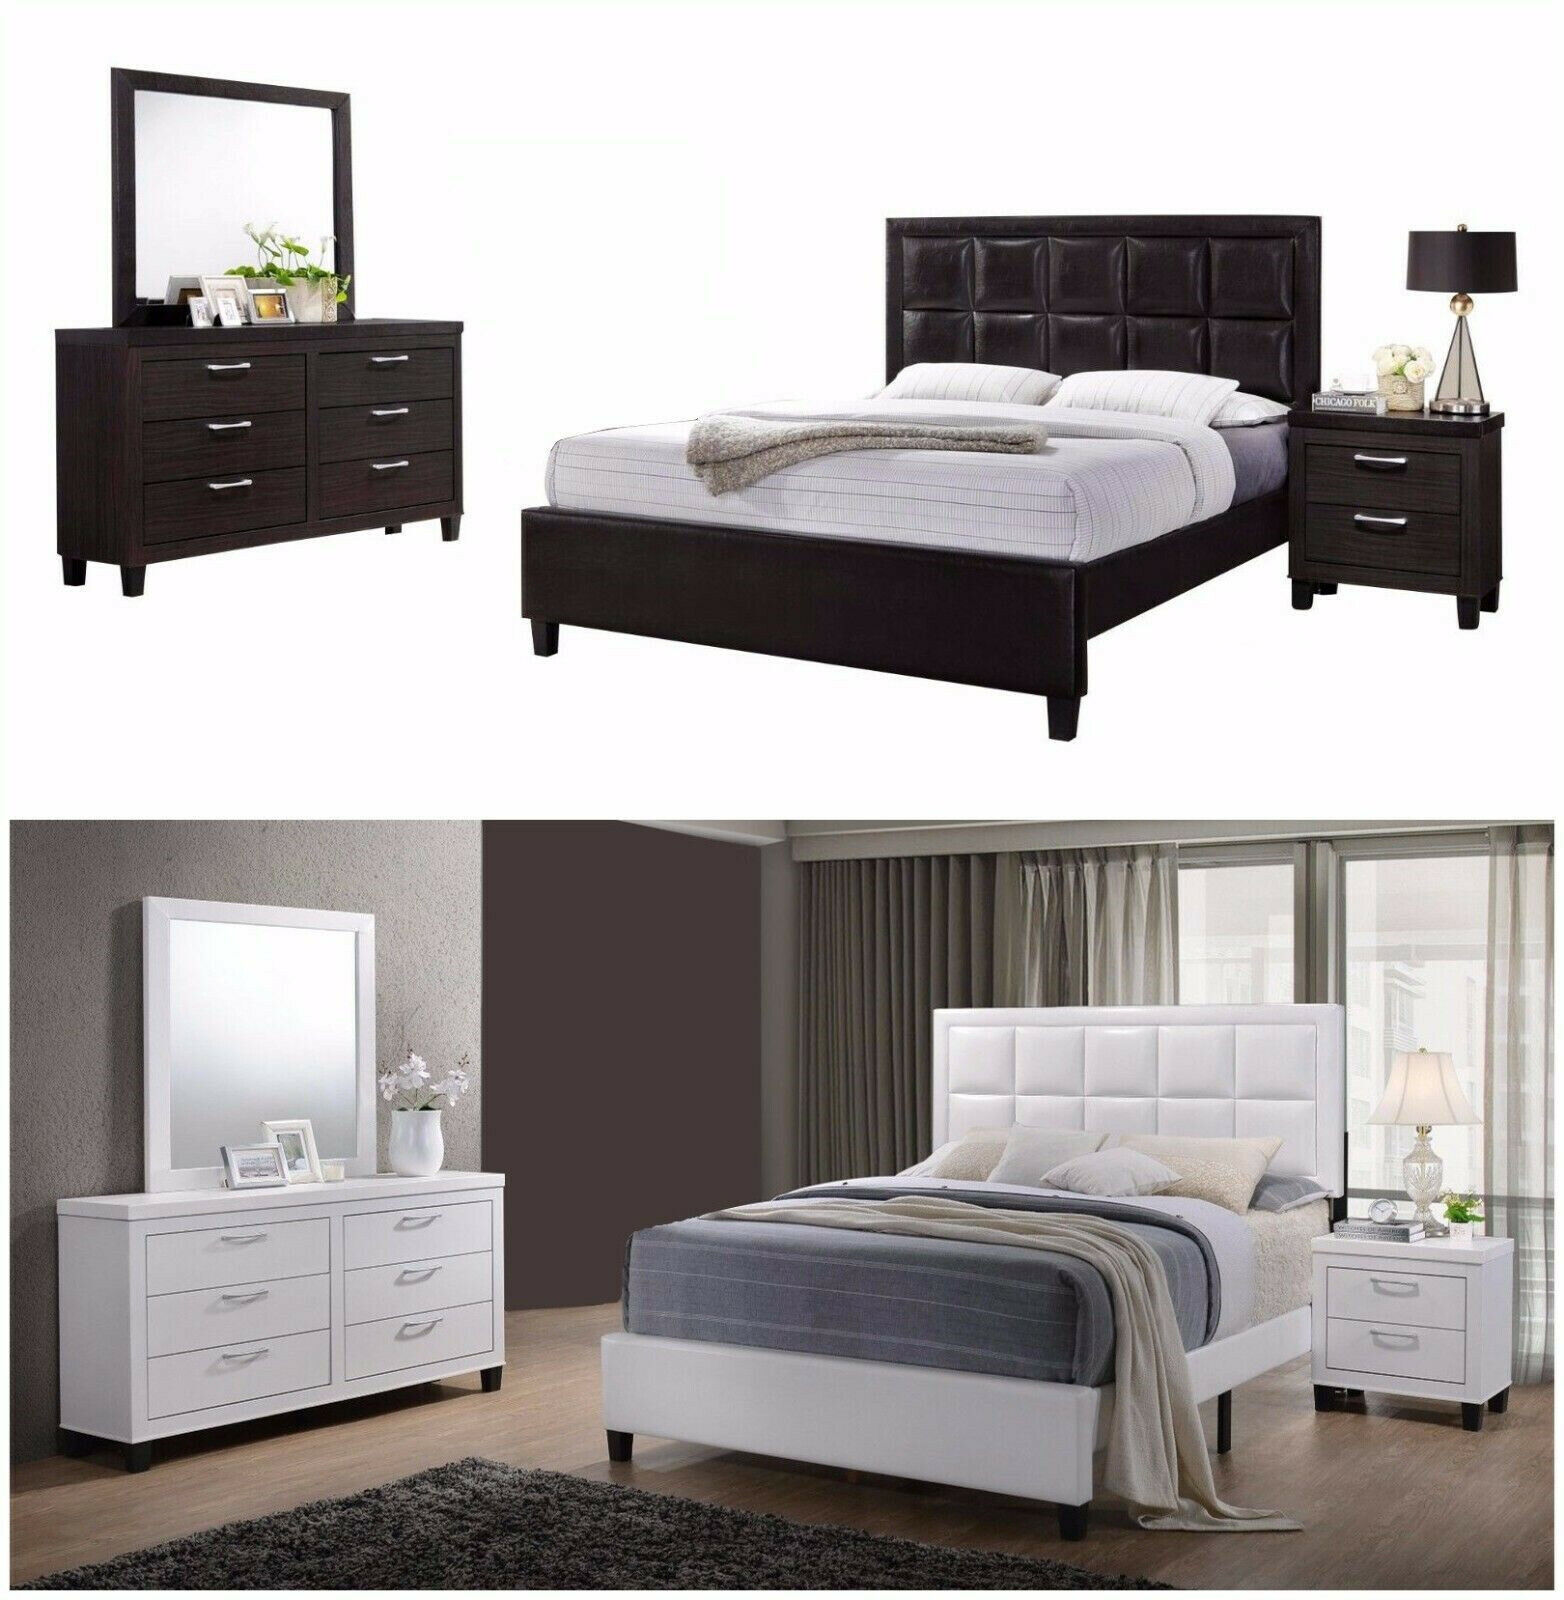 New 4pc Wood With Faux Leather Bedroom Set Queen Bed Nightstand Mirror Dresser